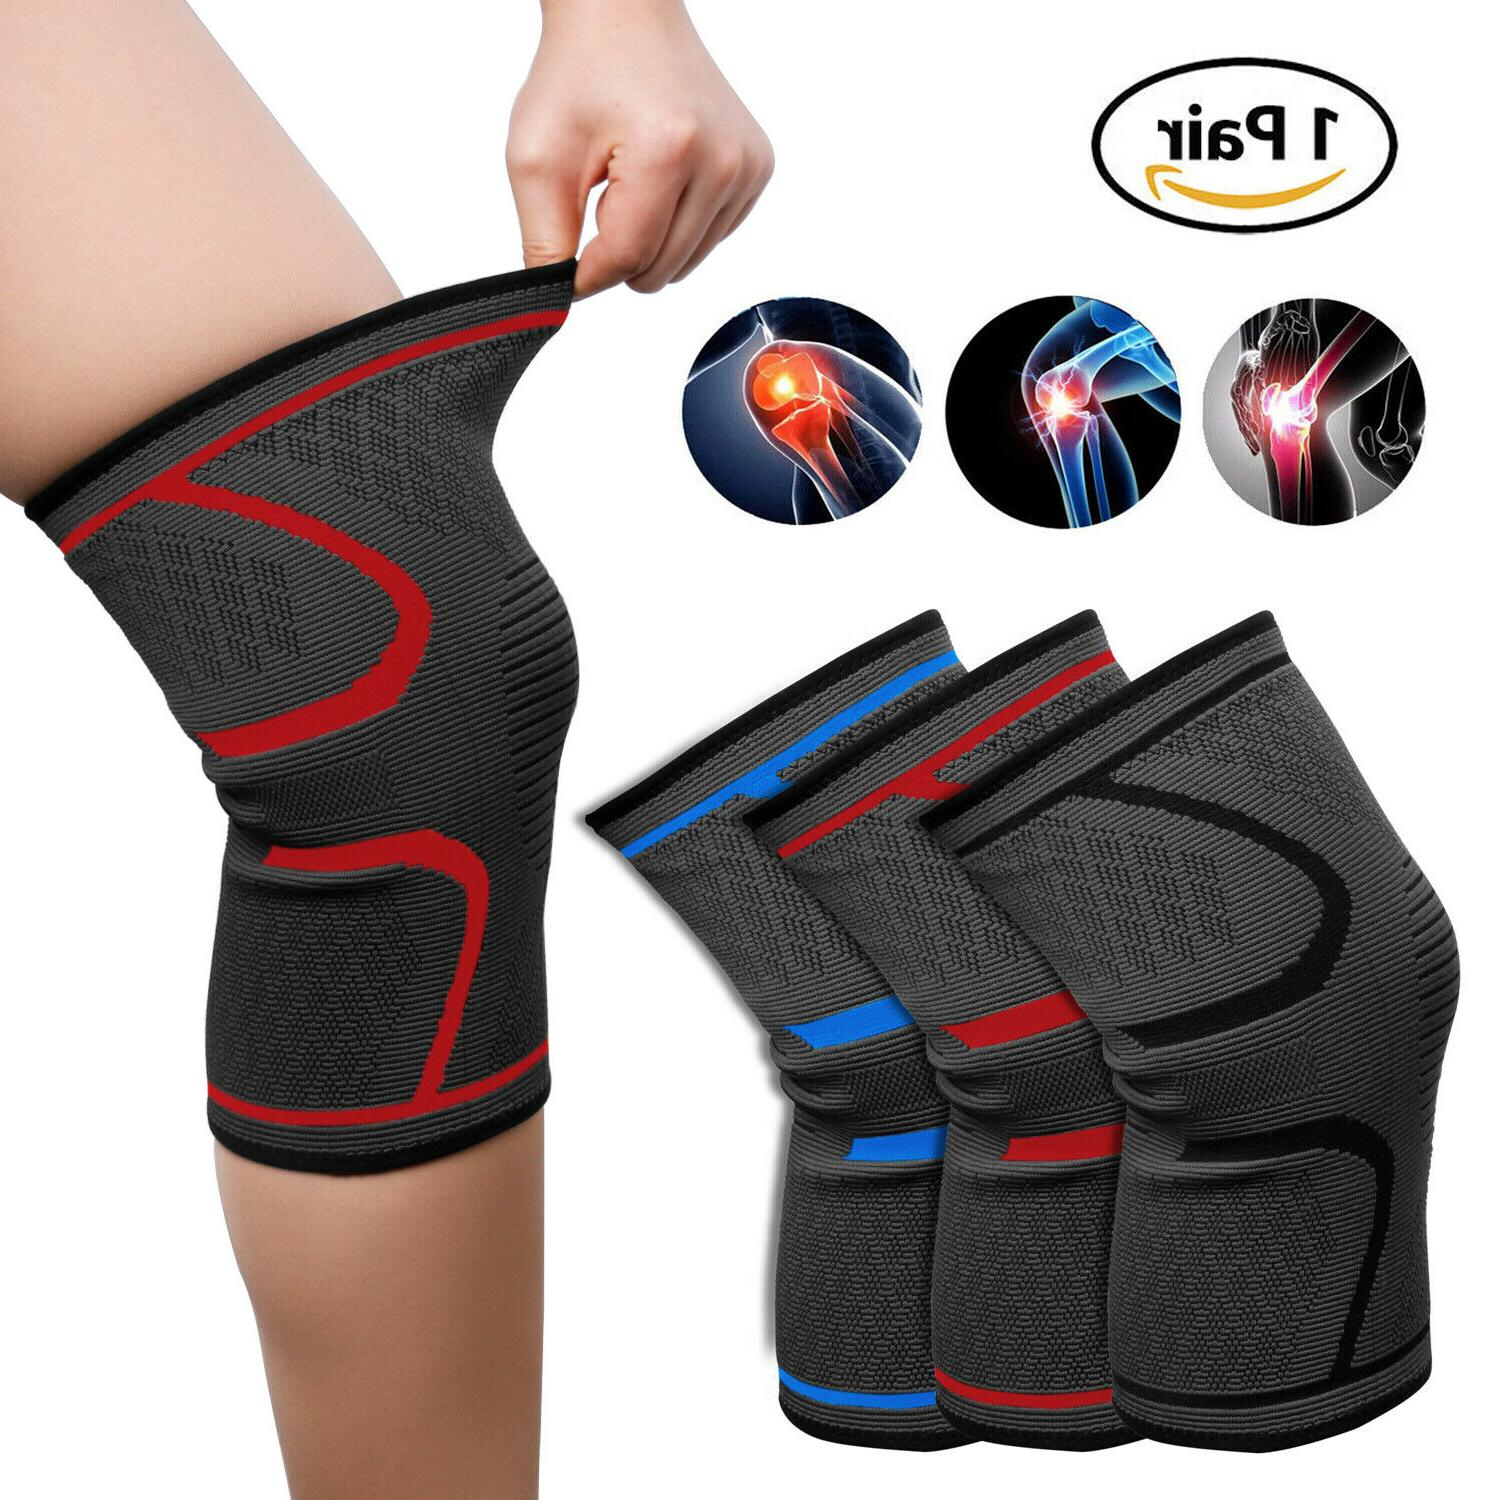 knee brace sleeve compression support for sports